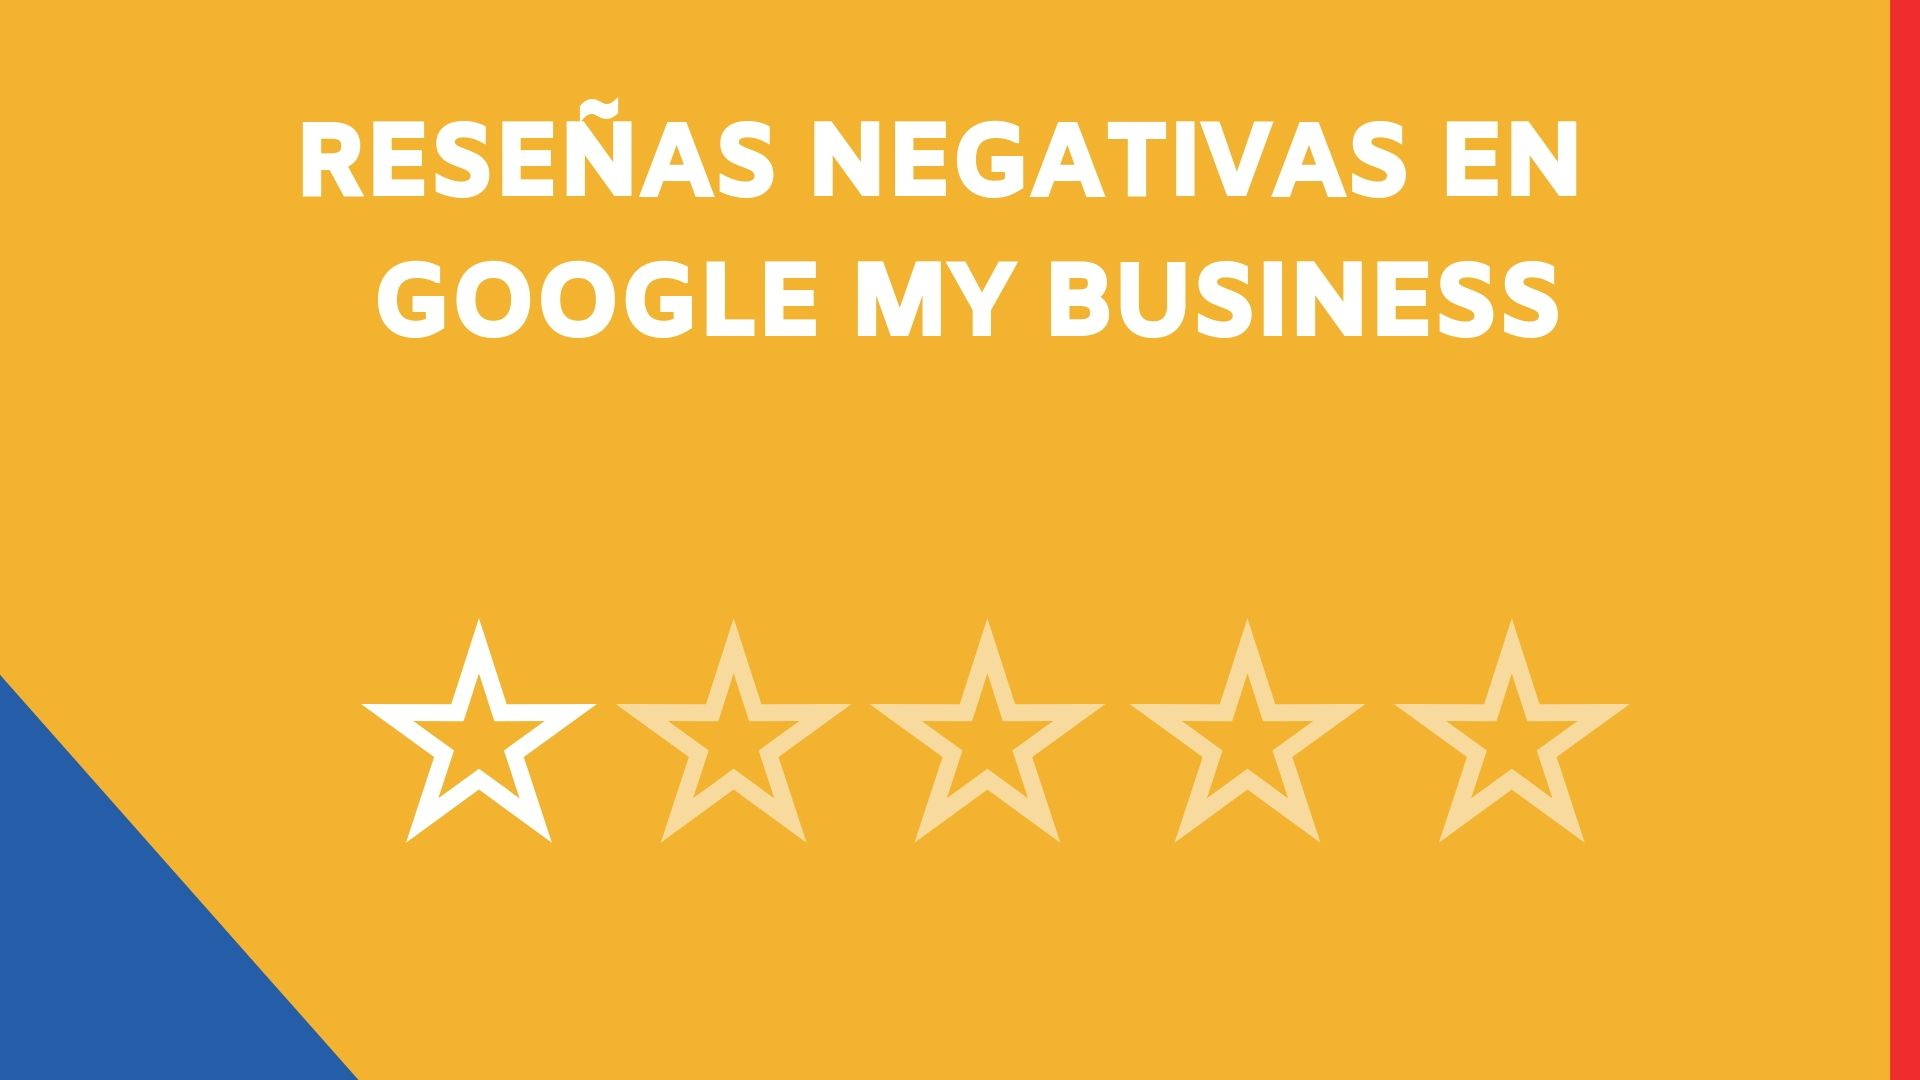 Reseñas negativas en Google My Business